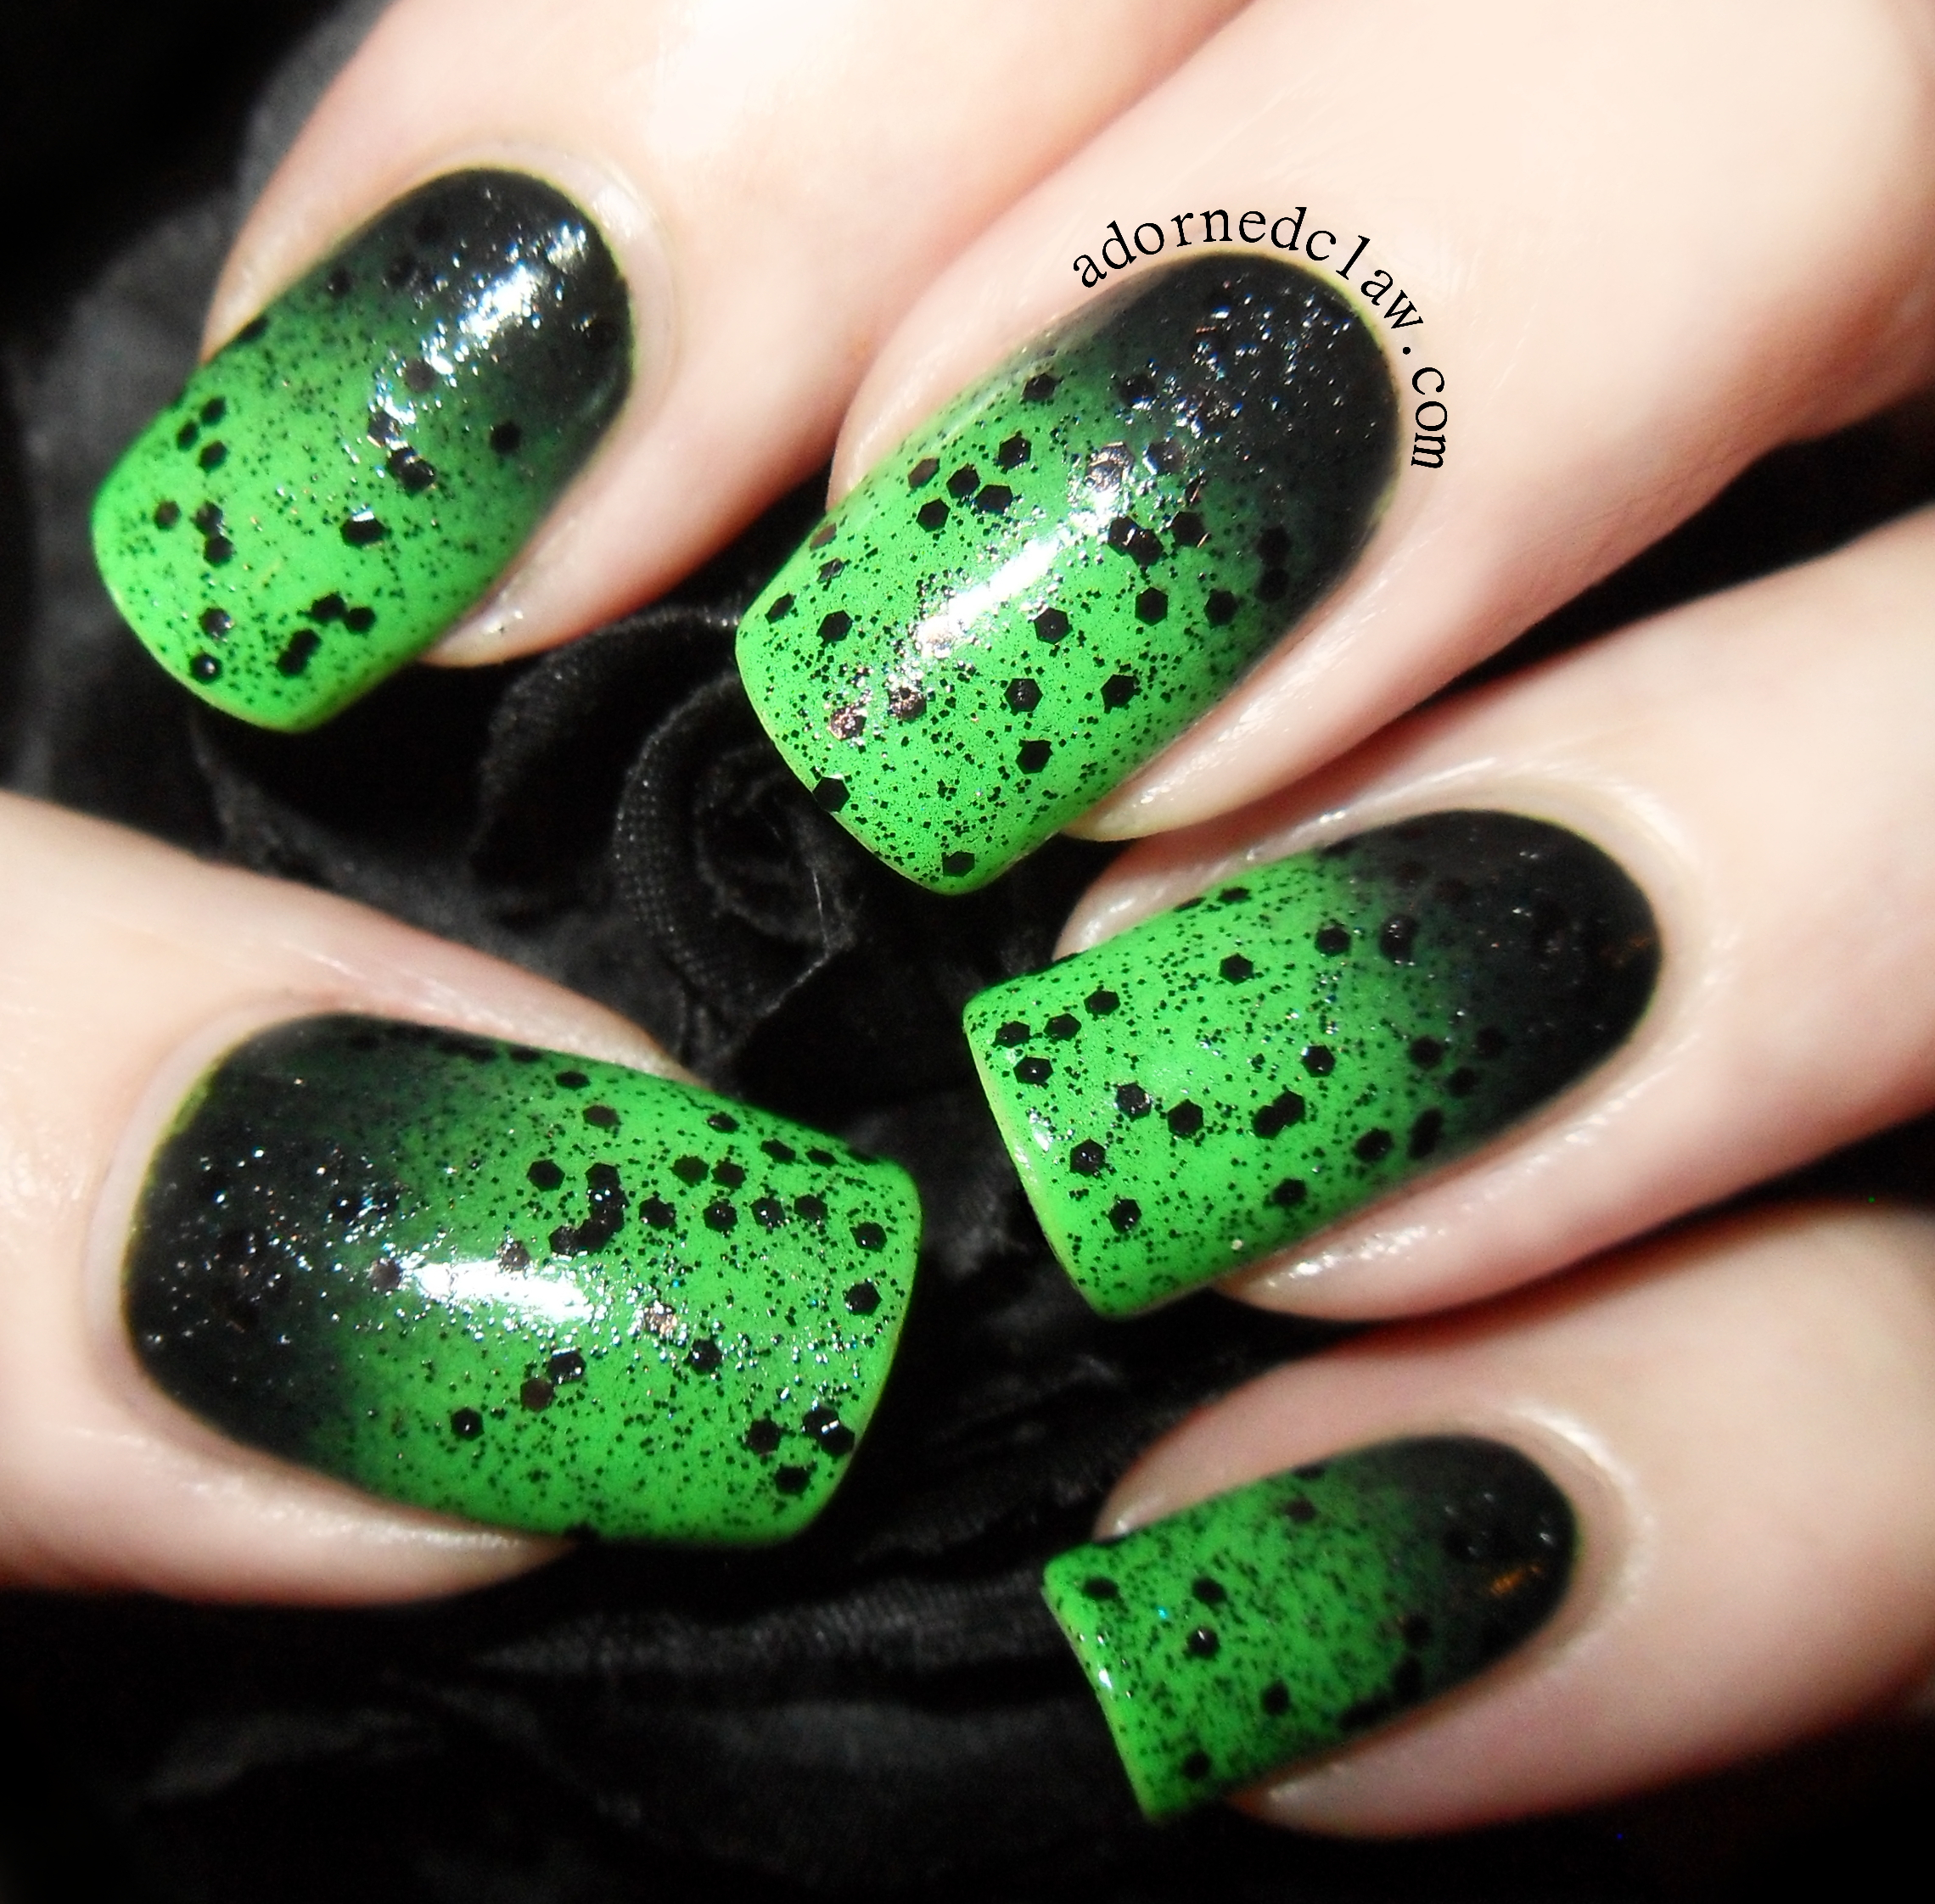 Gruesome Green Gradient | The Adorned Claw